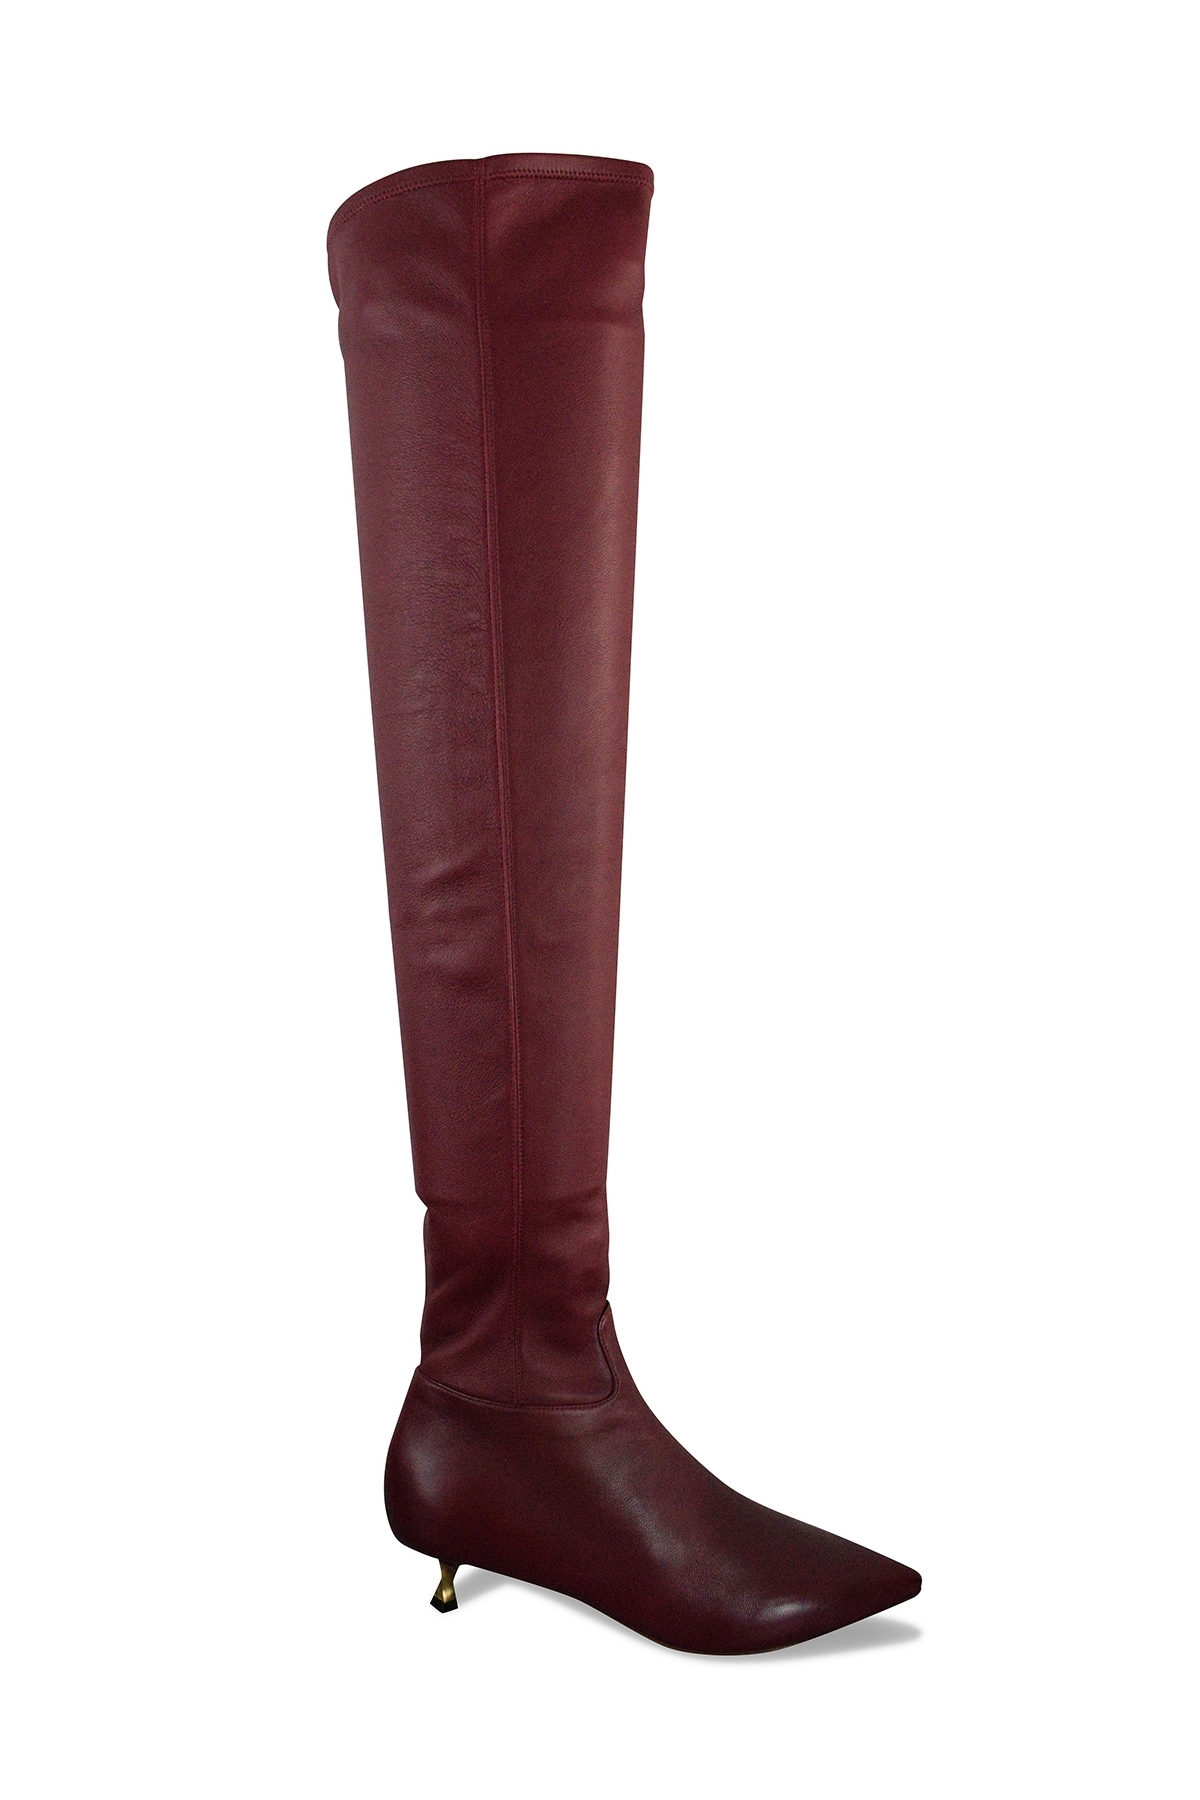 Valentino boots in stretch bordeaux leather with little golden twisted heel